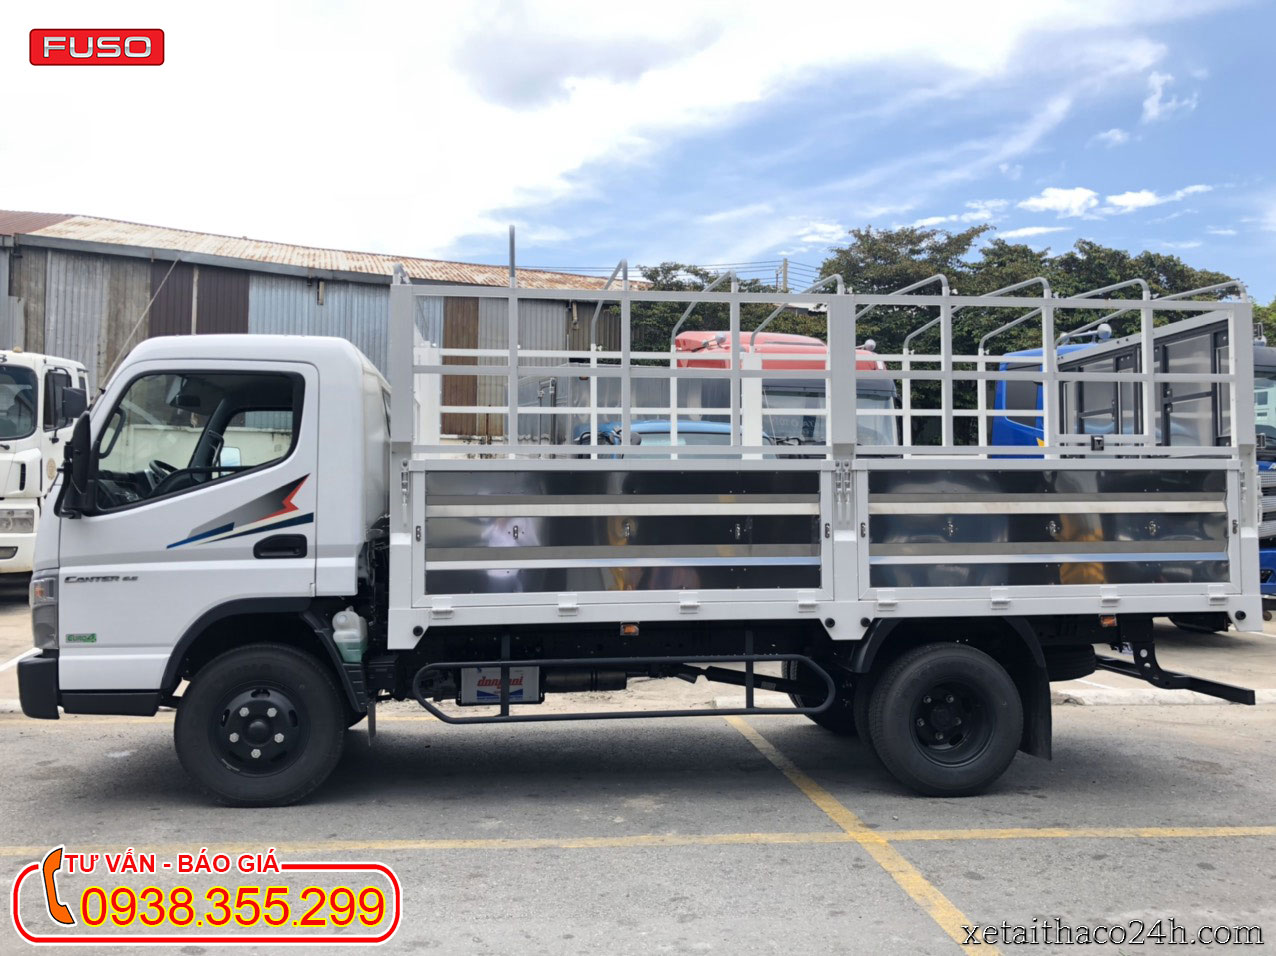 fuso-canter-4.99-mui-bat